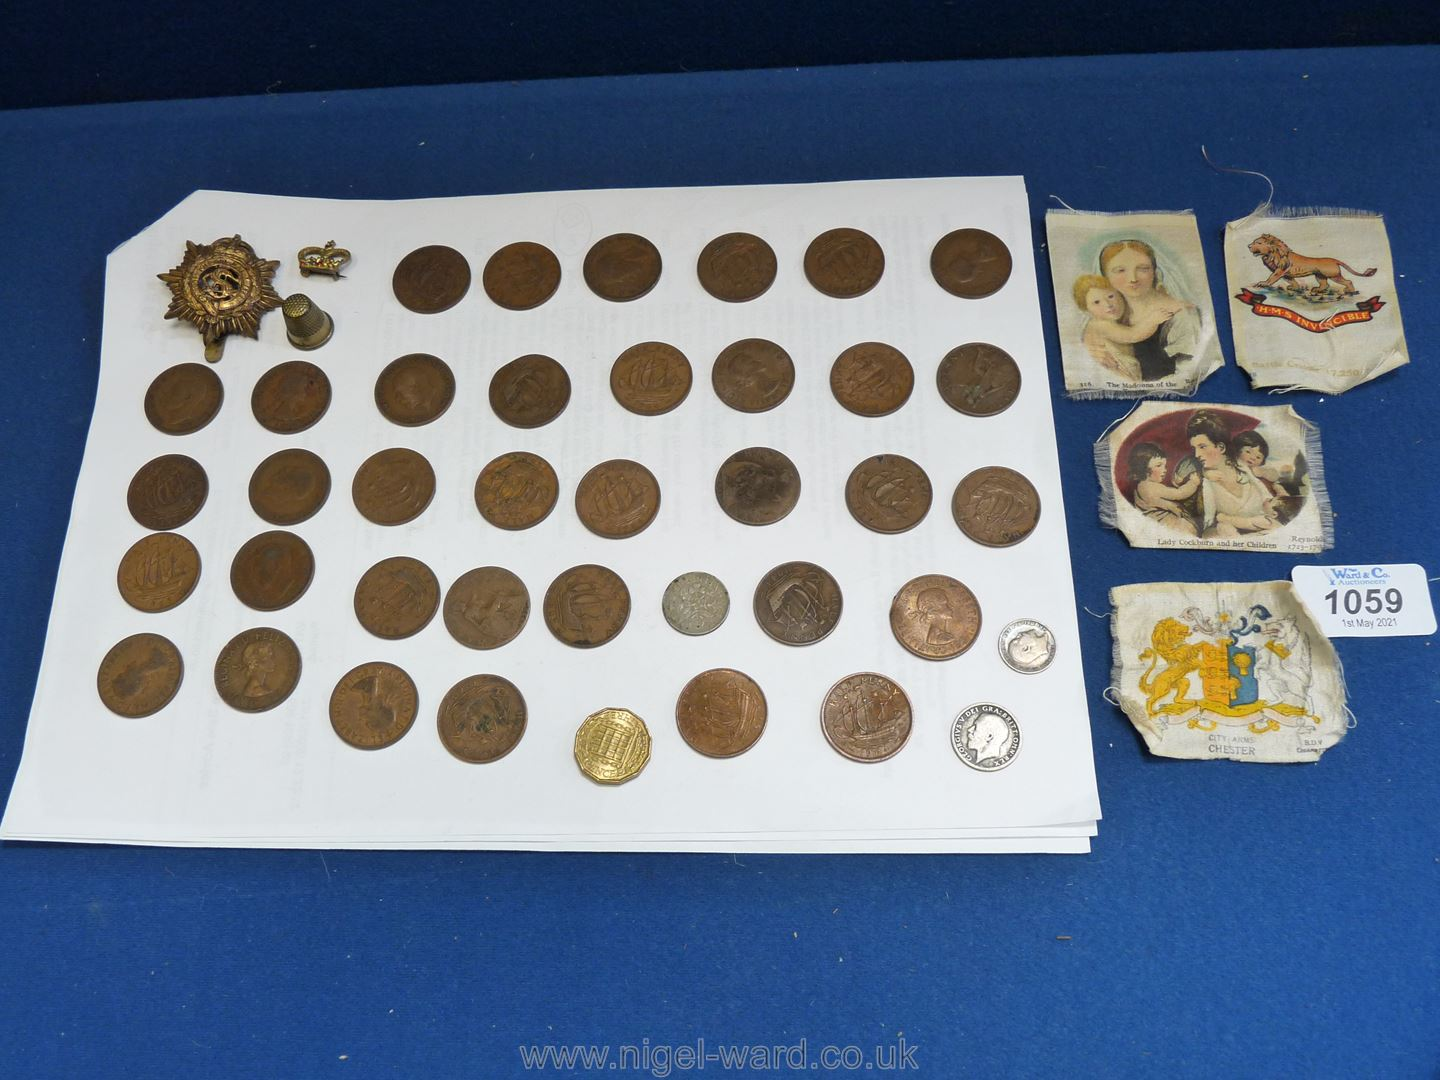 An Order of the Garter badge together with a quantity of half pennies, silver 3d piece, 3p bit,